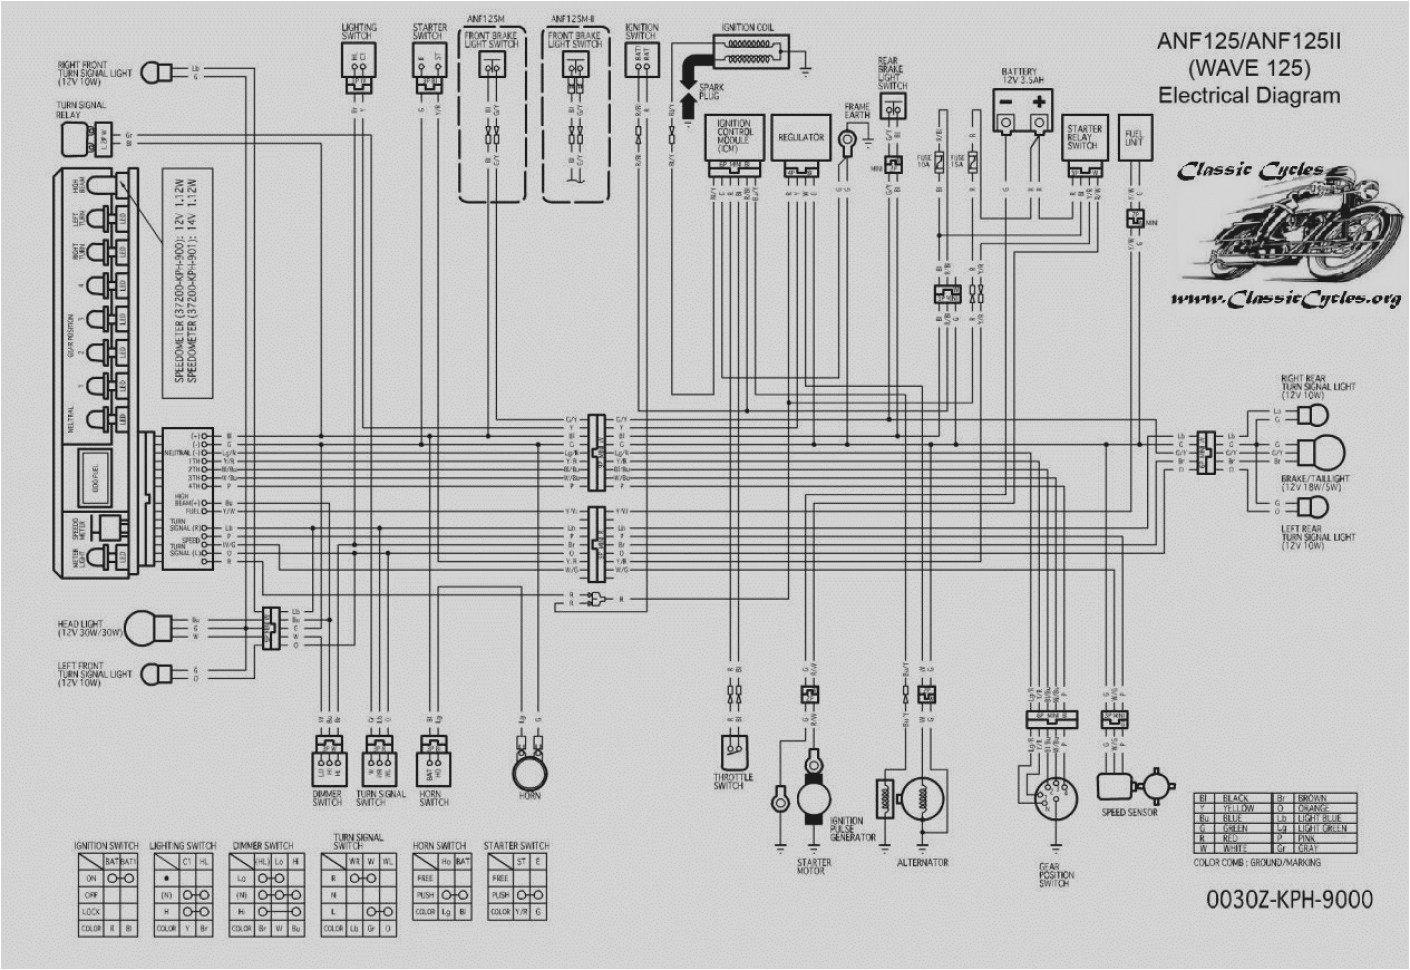 2005 Cbr 600 Rr Wiring Diagram For Display. 2005 honda cbr600rr wiring  diagram autocardesign. 2017 honda cbr600rr wiring diagram wiring diagram.  sv650s headlight issue. cbr1000rr wiring diagram online wiring diagram.  cbr1000rr wiringA.2002-acura-tl-radio.info. All Rights Reserved.